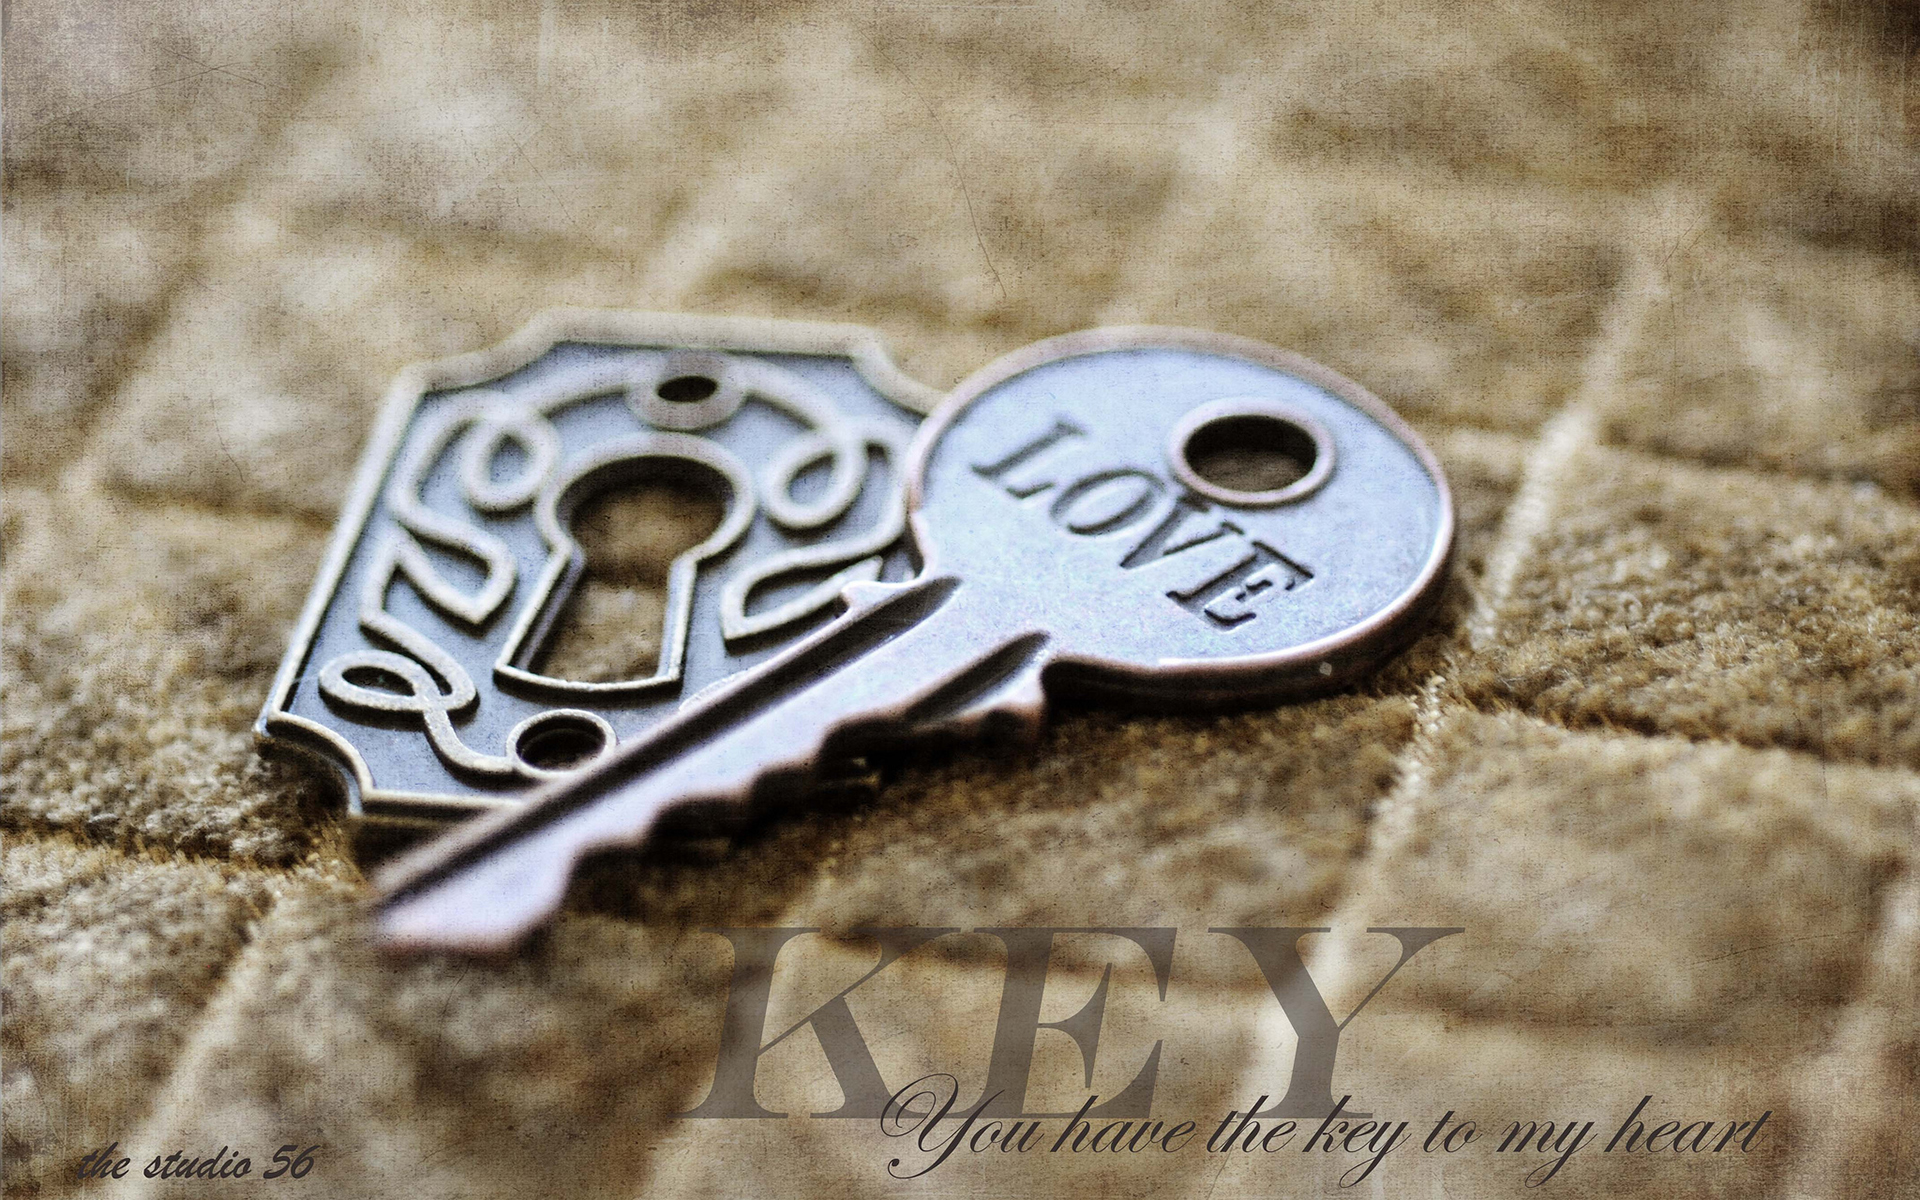 Bokeh love romance valentine s day holiday key mood emotion macro quotes statement words ...